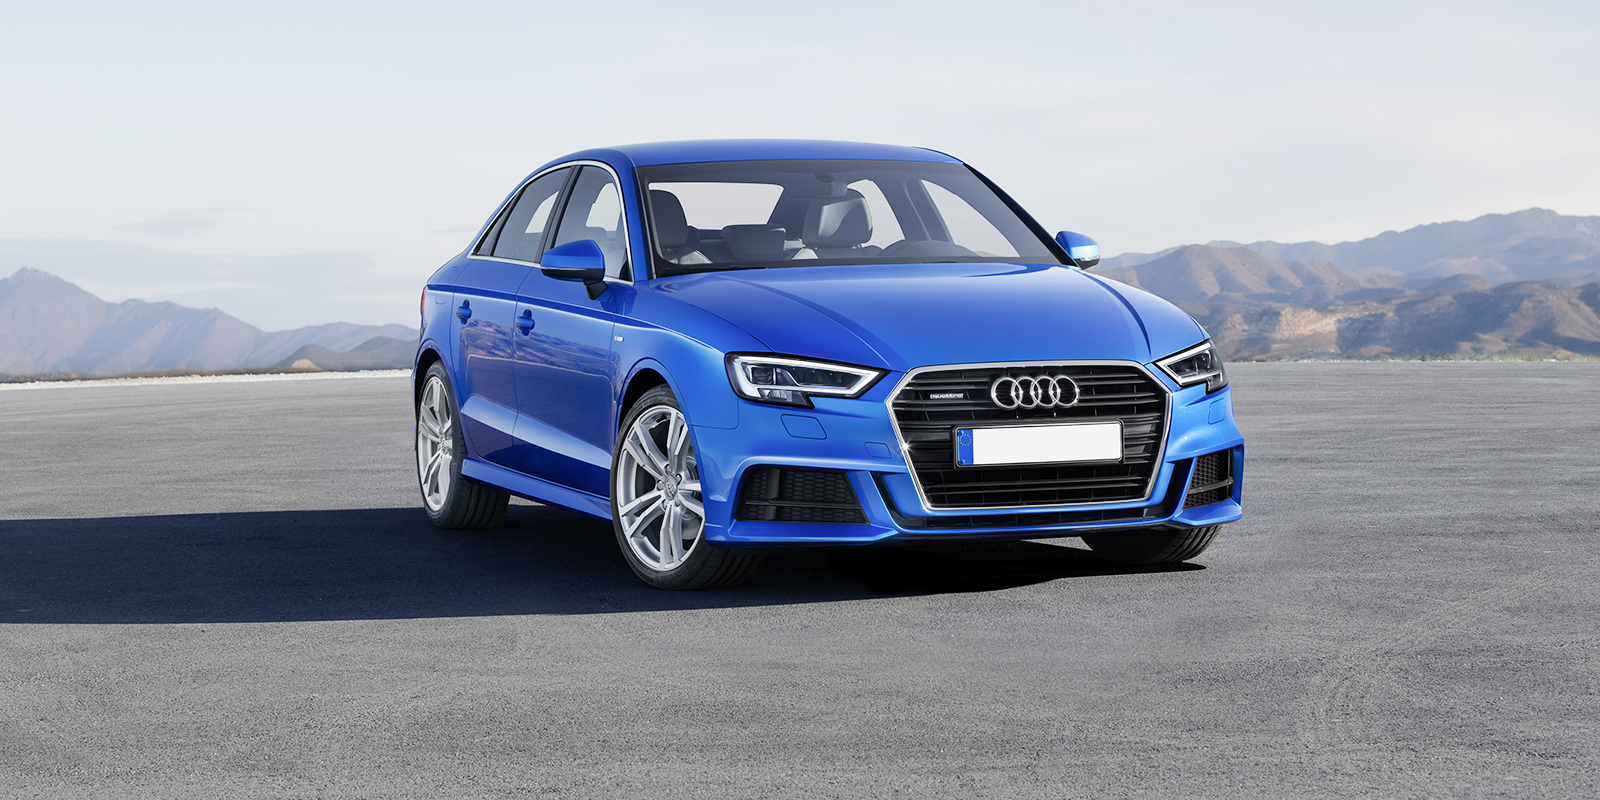 Audi A3 Sportback Saloon Cabriolet Colours Guide Carwow